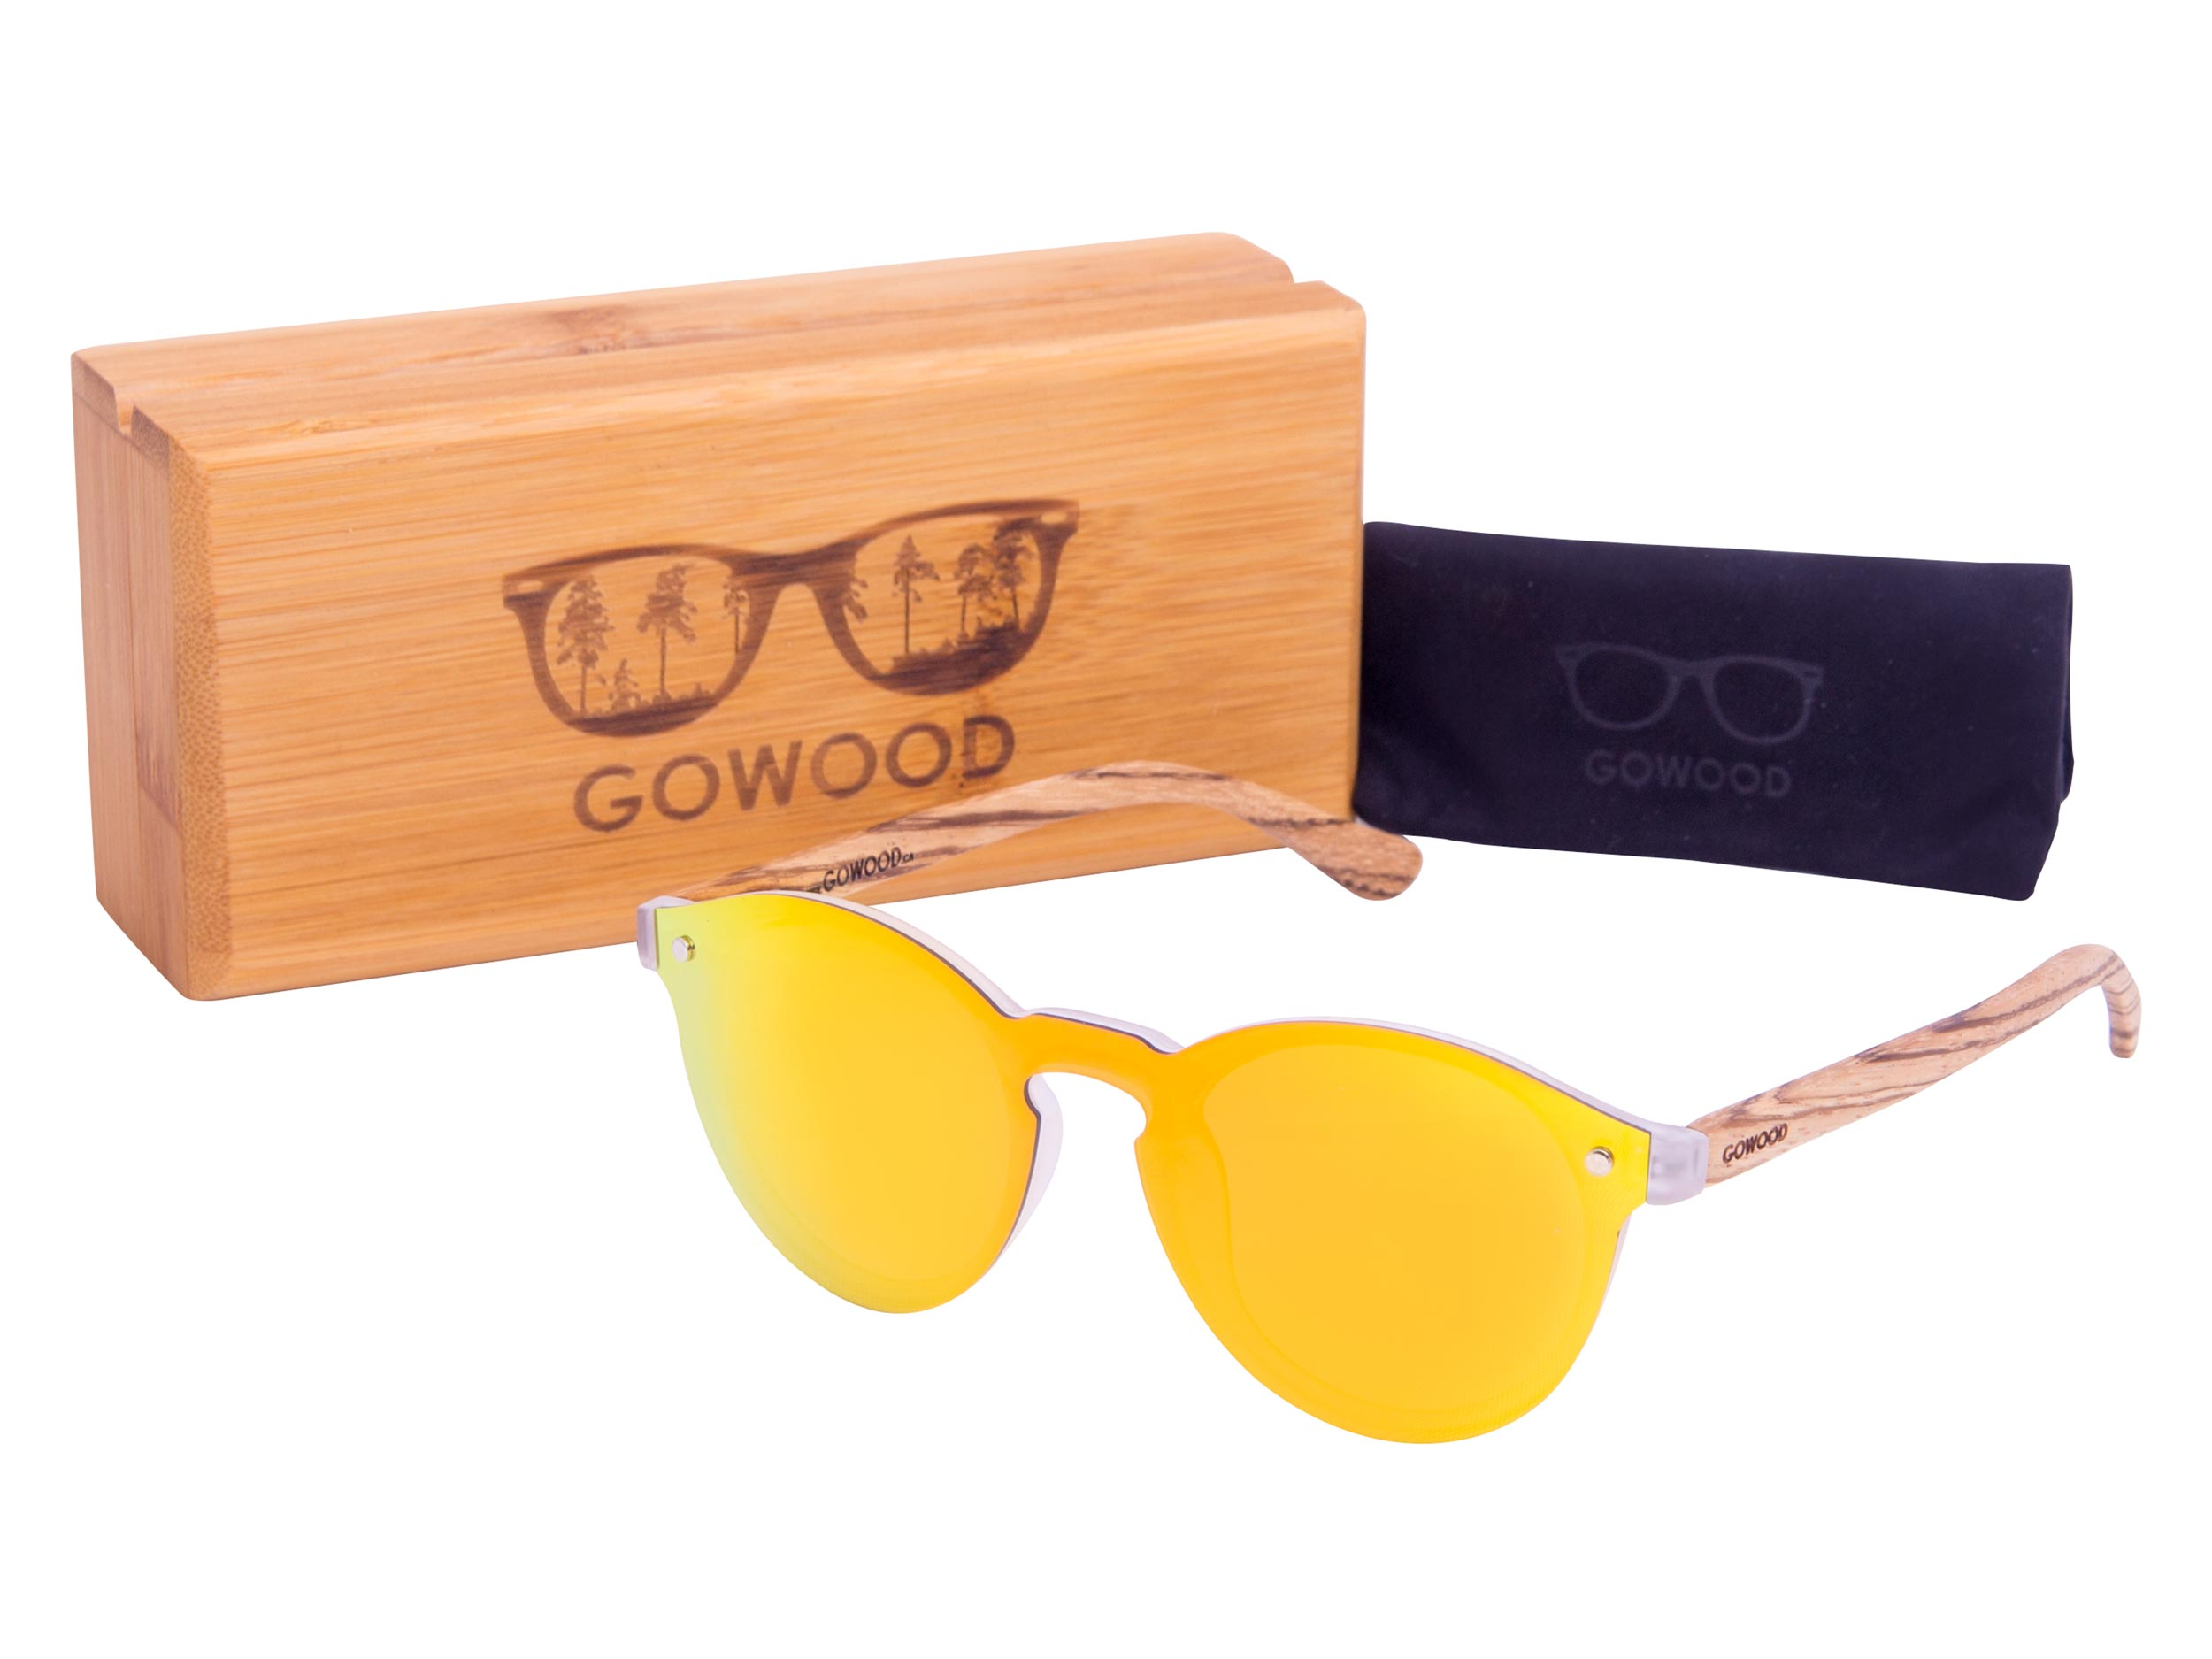 Round zebra wood sunglasses set